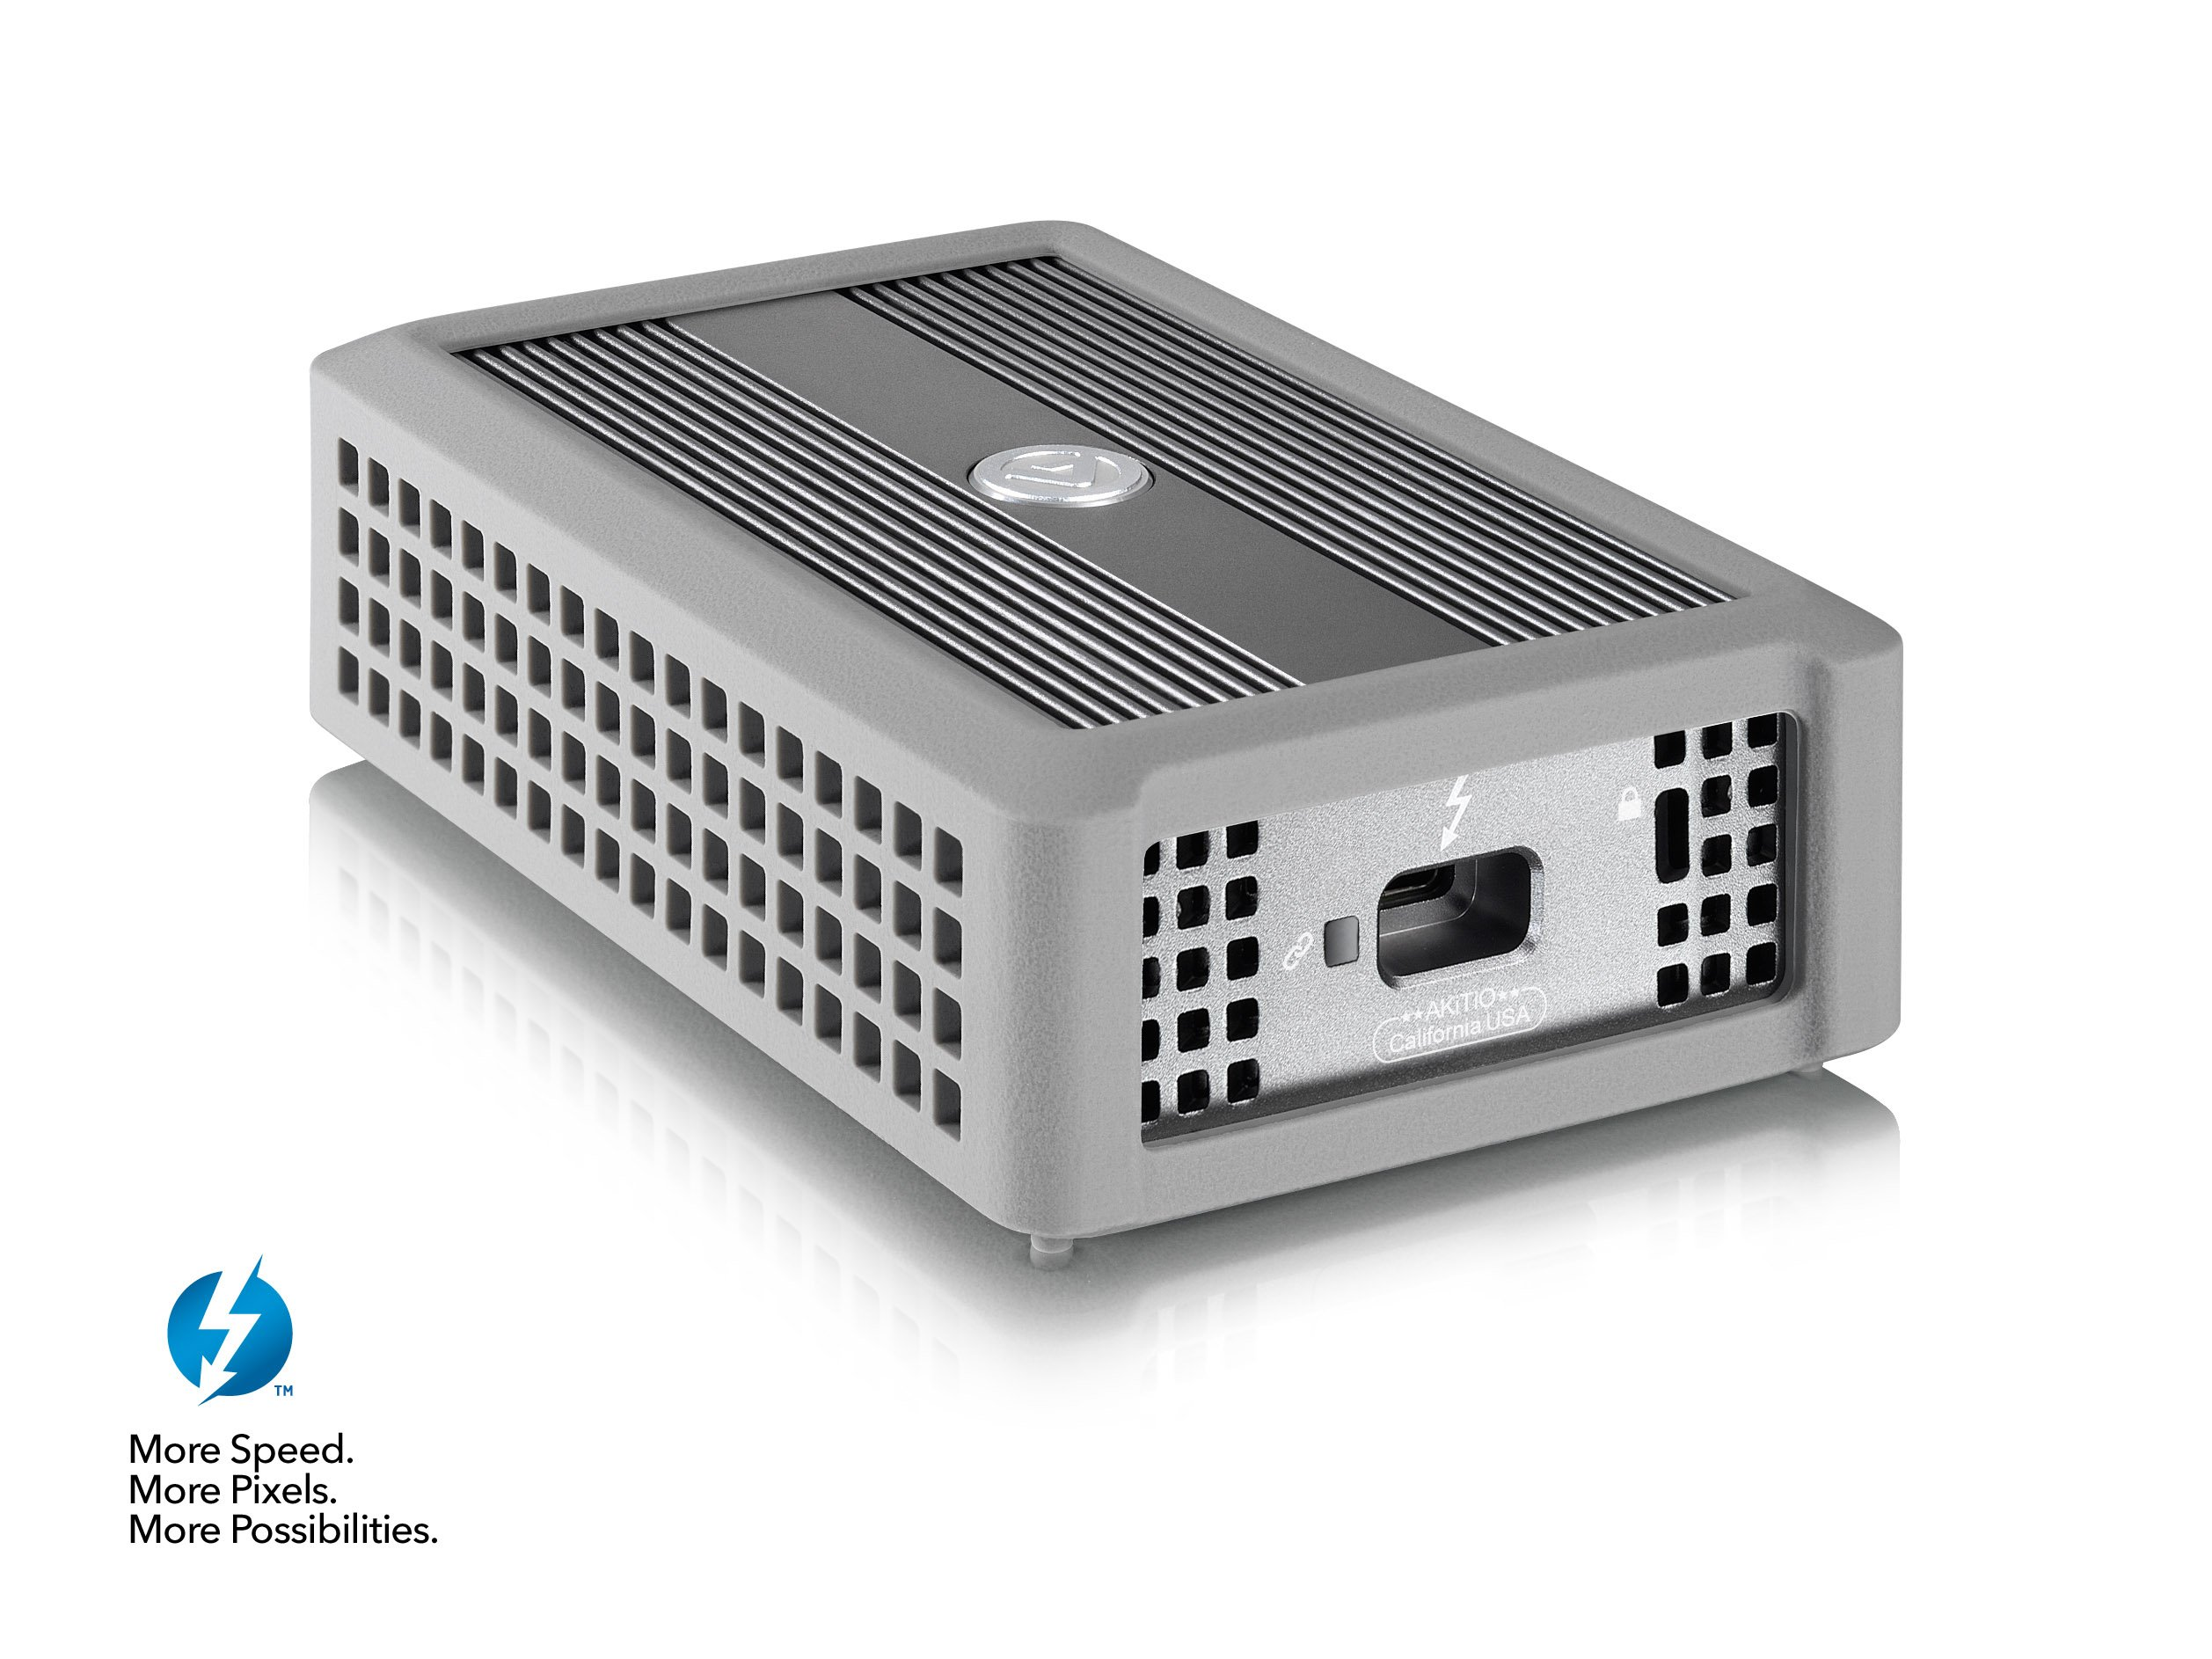 Akitio T3TGAA0008Y000 T3-10G: (Thunderbolt3 to 10G Adapter with Intel Alpine Ridge + Aquantia AQC107S) Electronics by Akitio (Image #1)